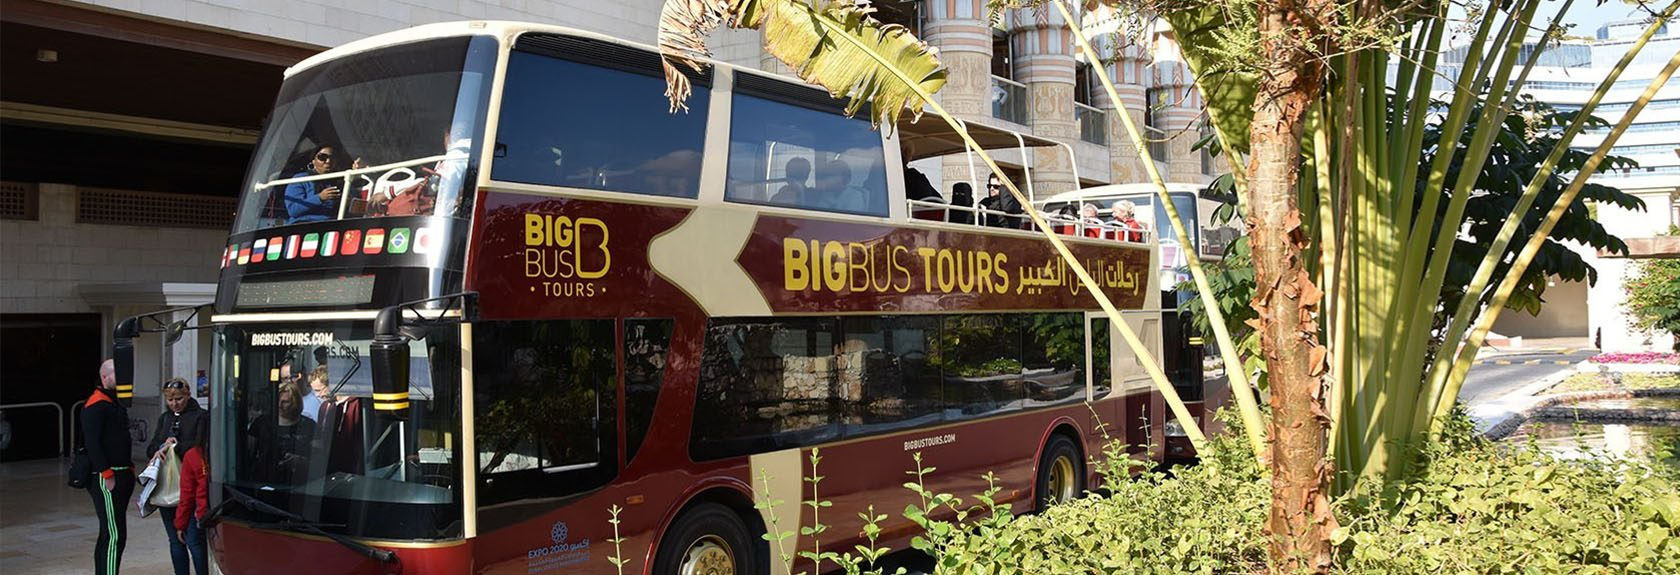 Dubai Big Bus – Hop-on Hop-off bus Dubai